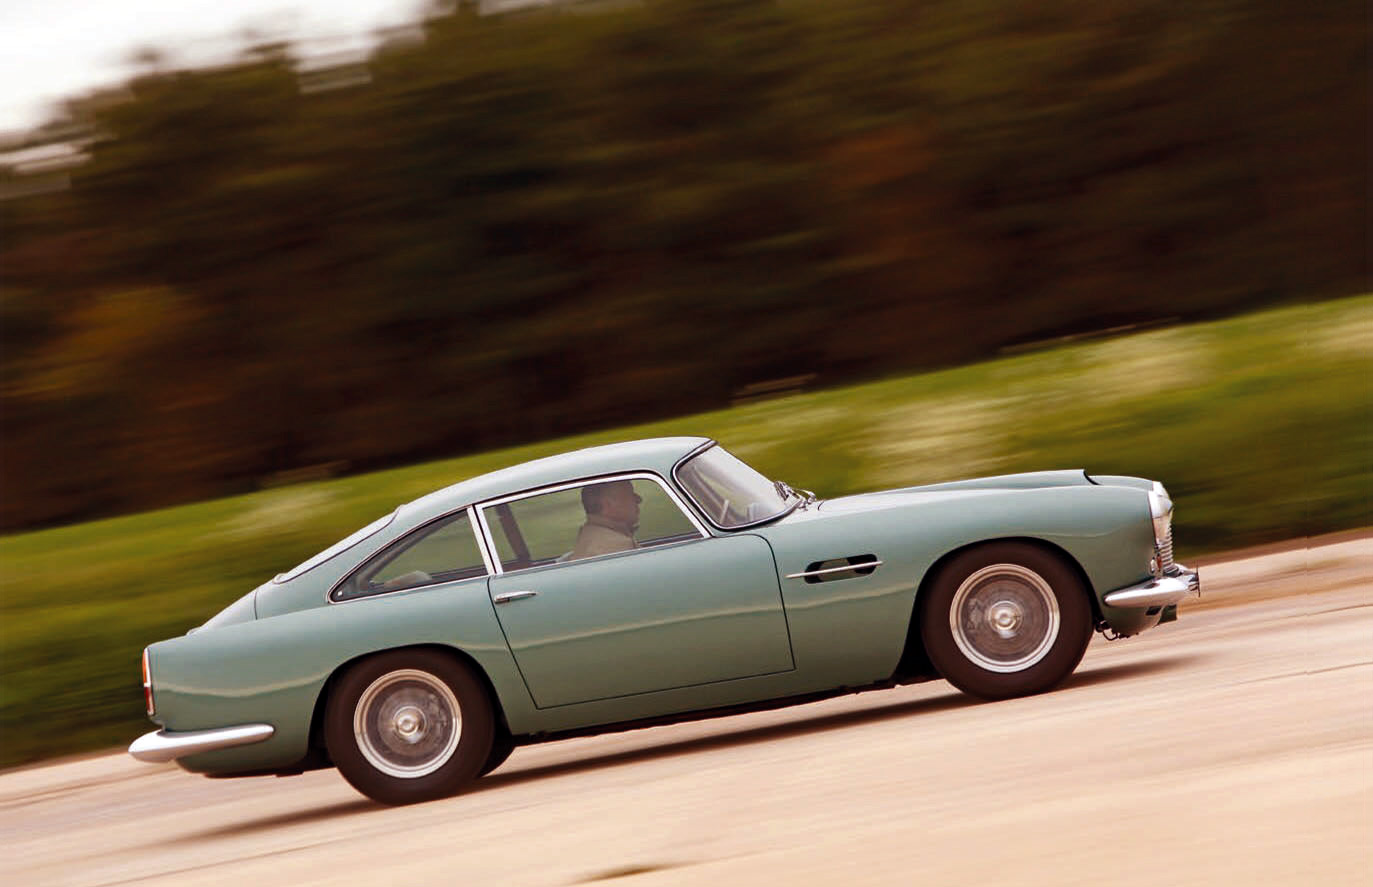 Aston Martin DB4 road test